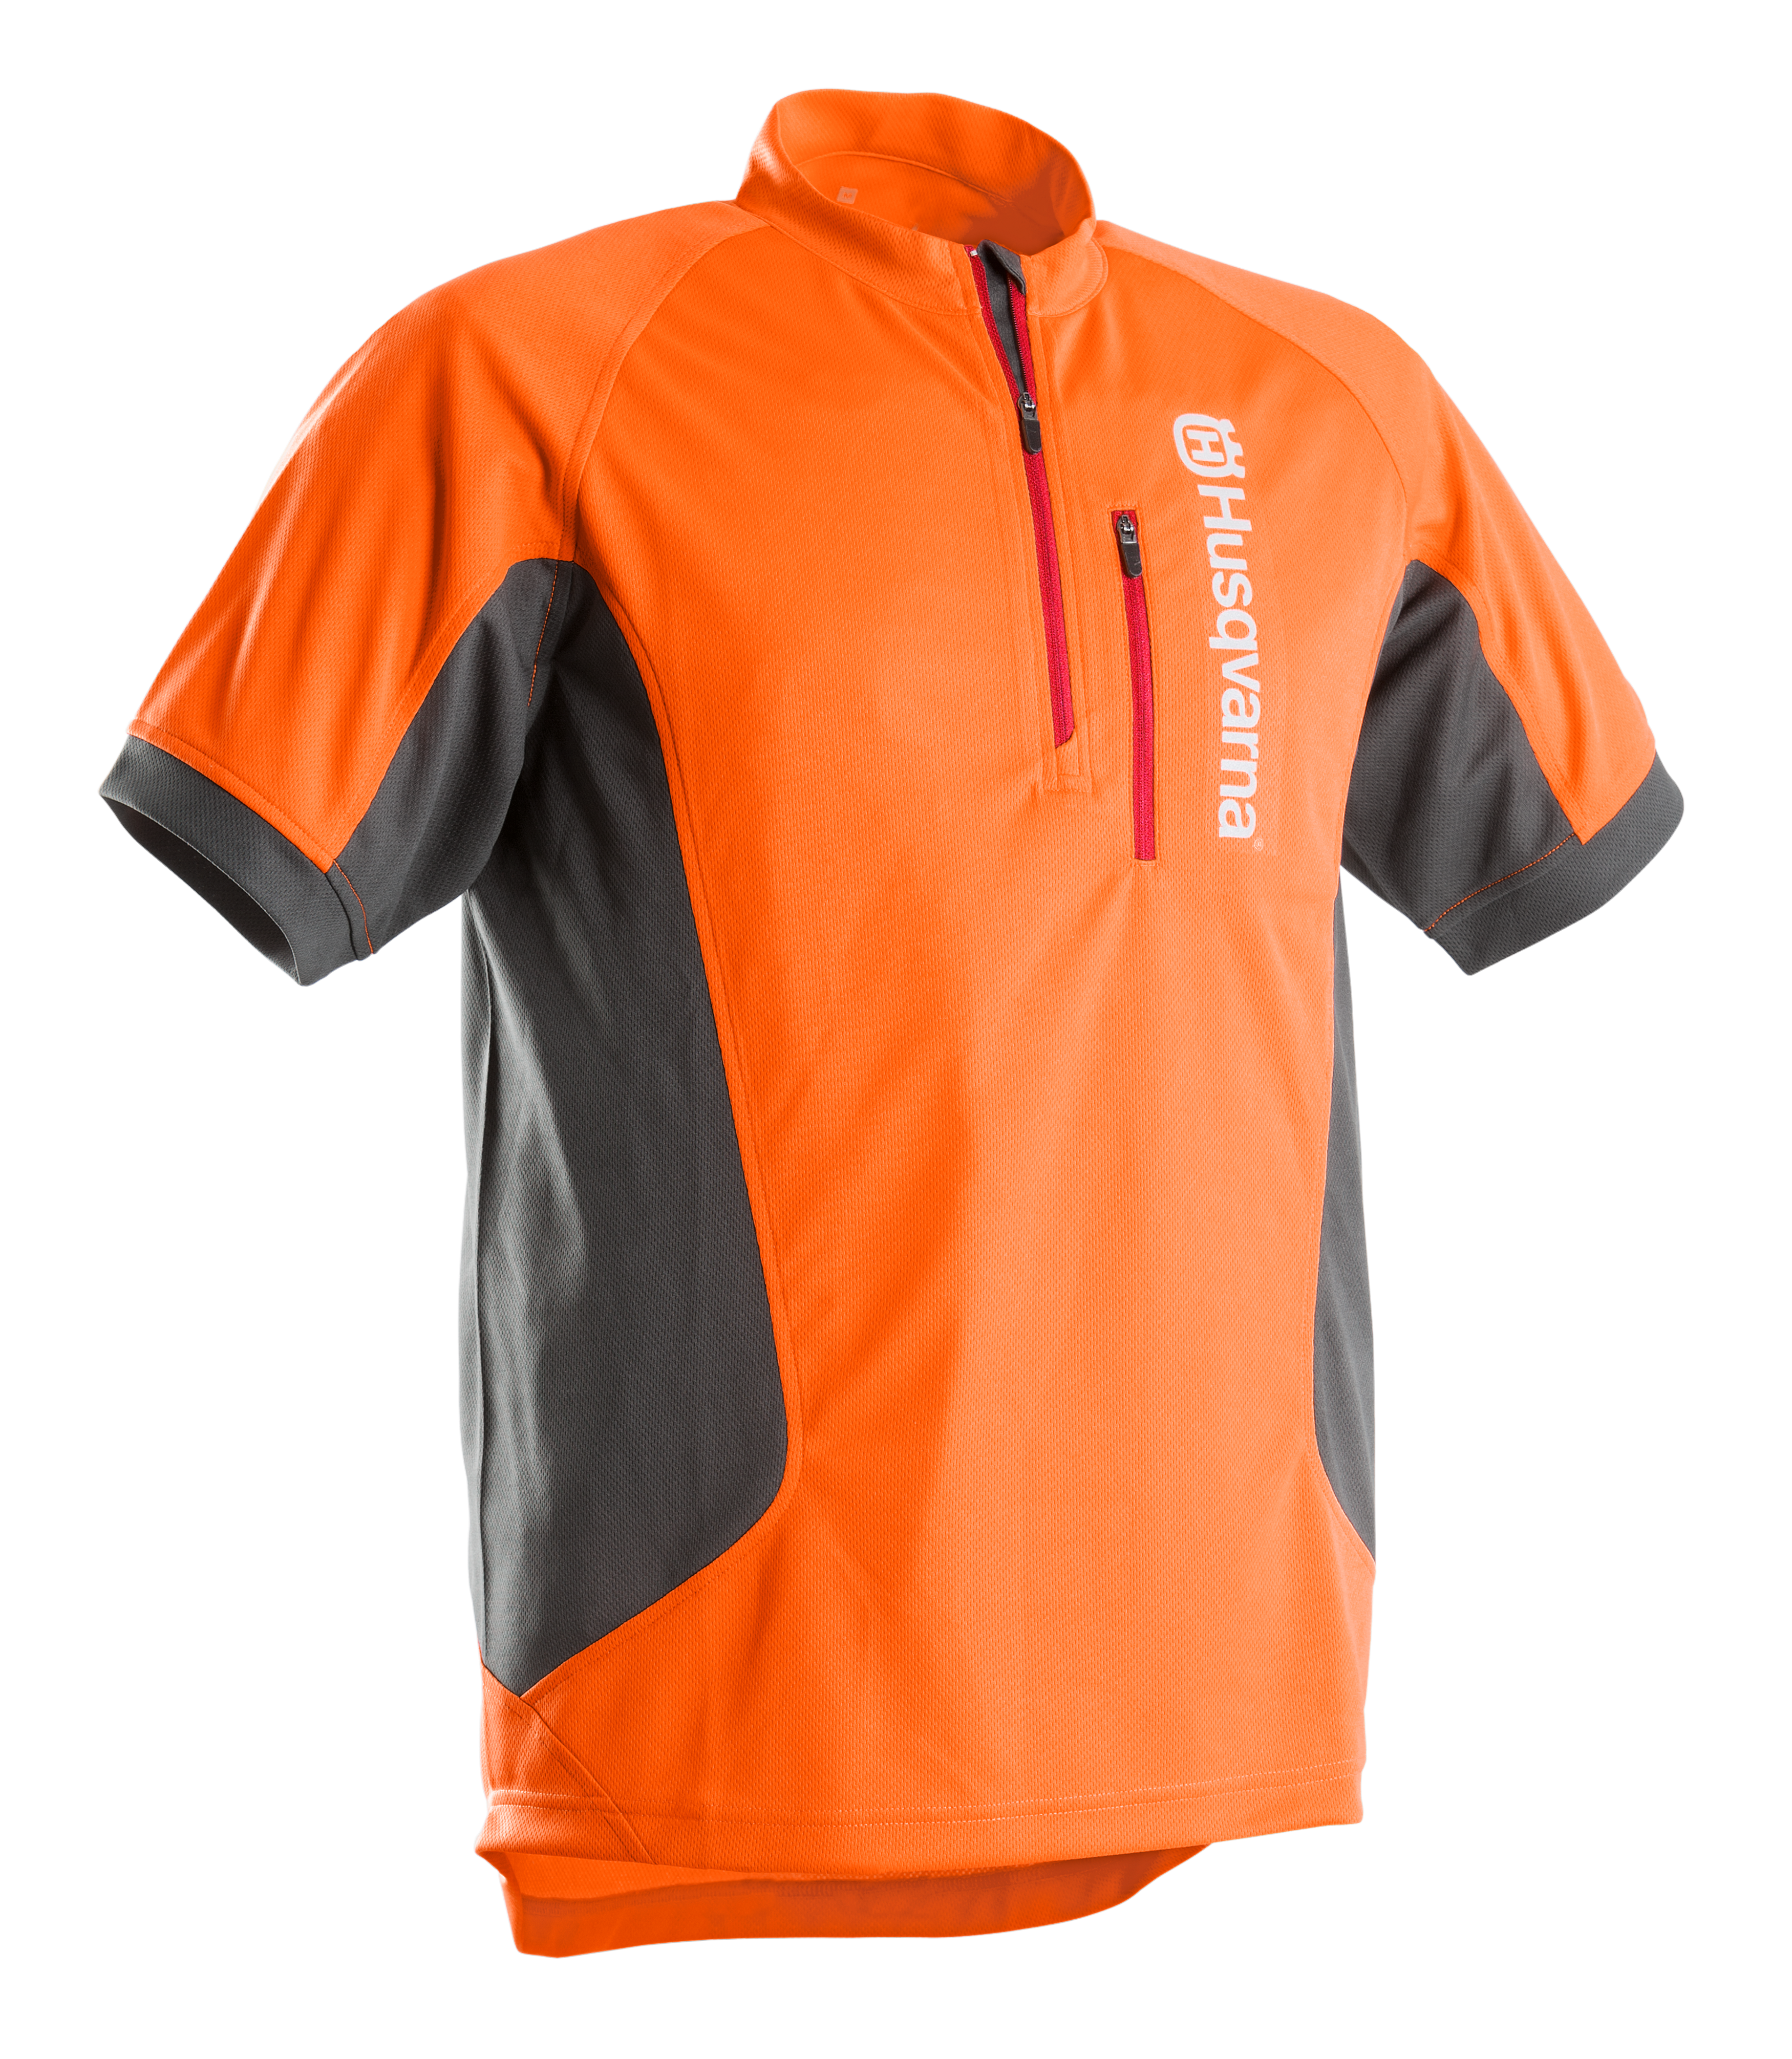 Image for Short Sleeve Technical Shirt                                                                                                     from HusqvarnaB2C